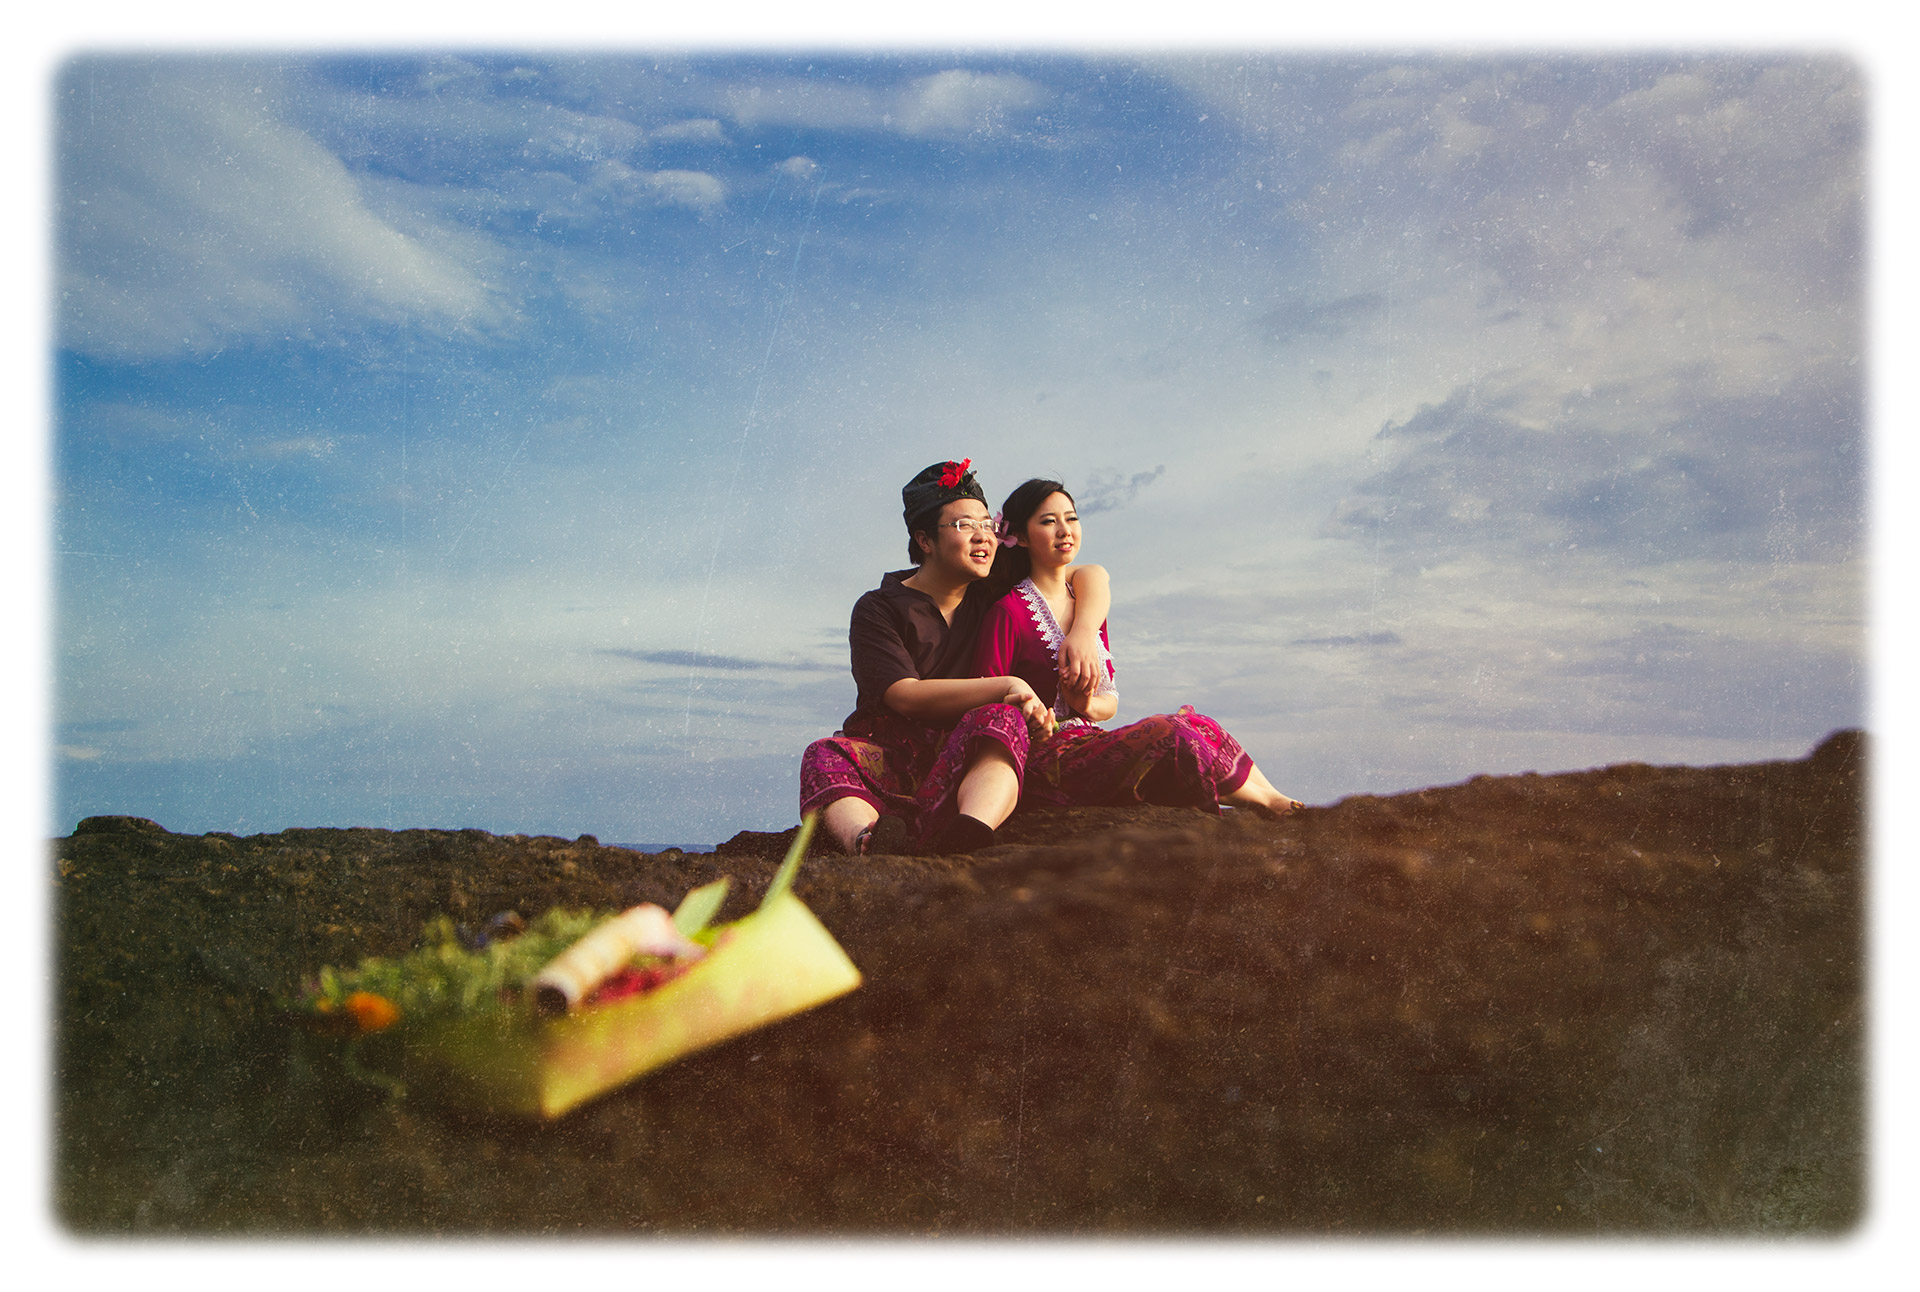 Bali Vintage Film Photography